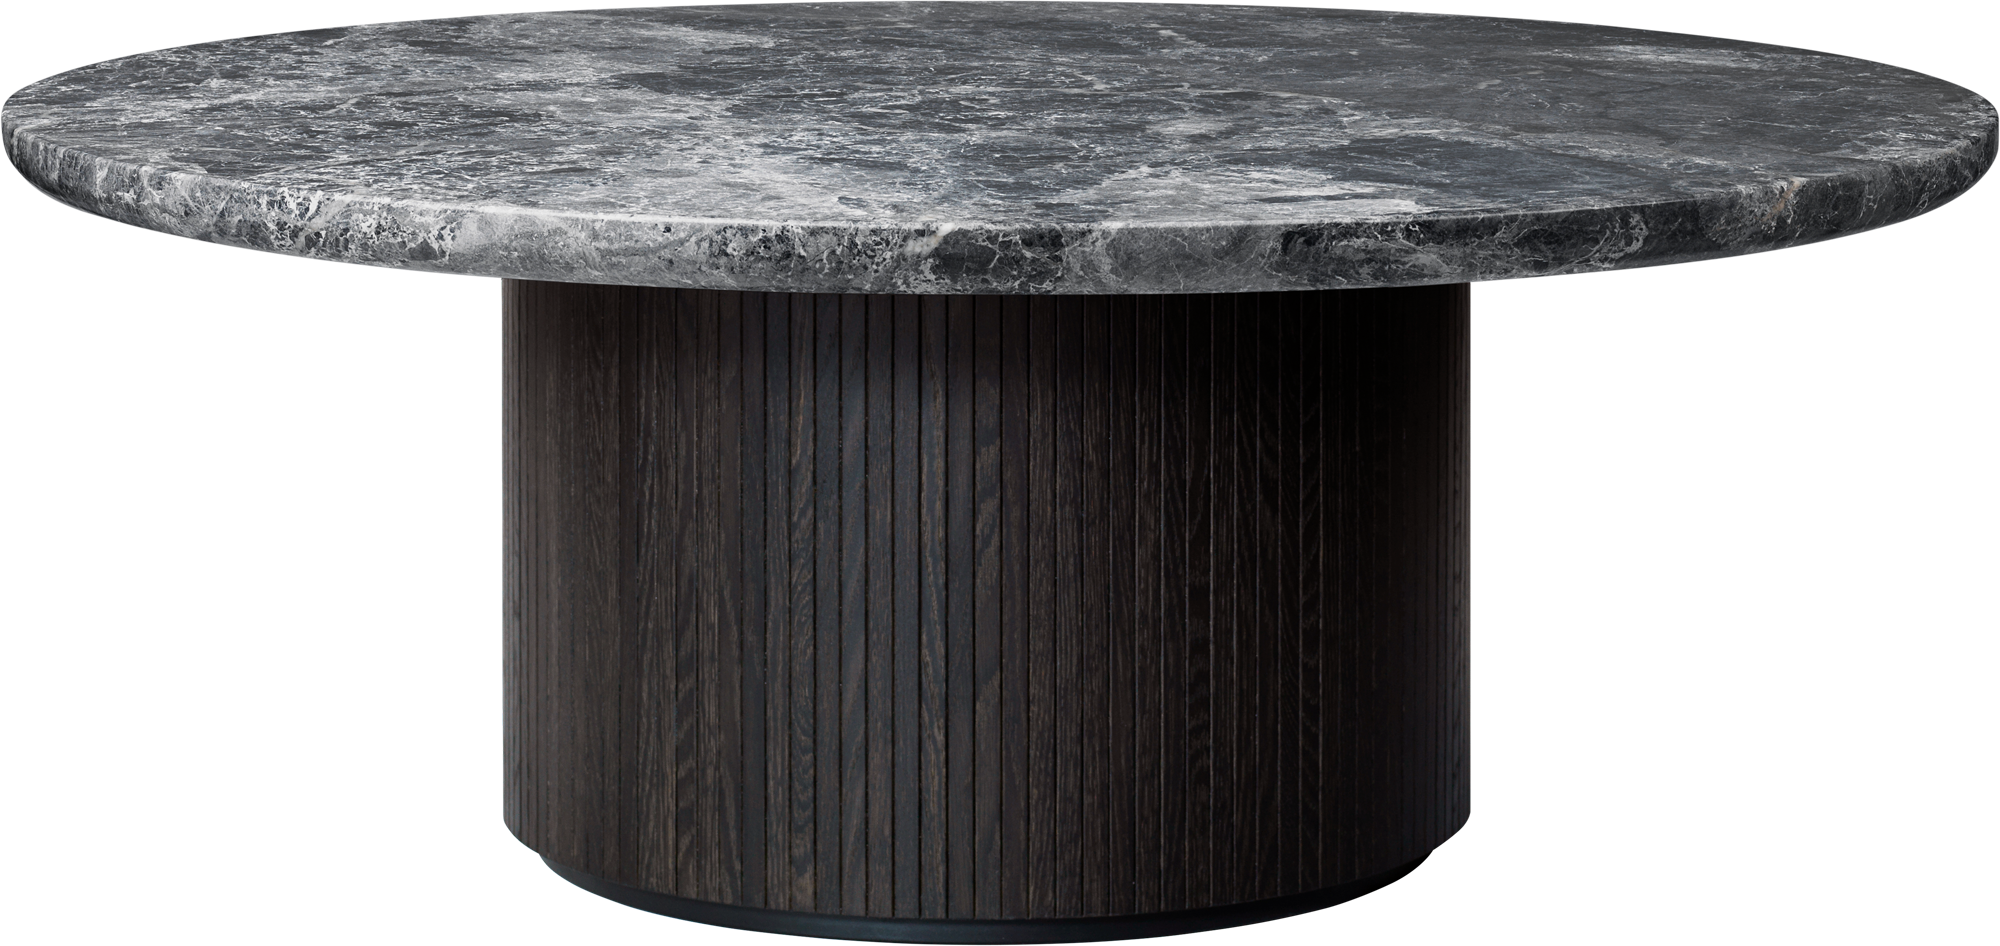 Marble Block Square Coffee Table Google Search Coffee Table Square Round Coffee Table Marble Round Coffee Table [ 946 x 2000 Pixel ]